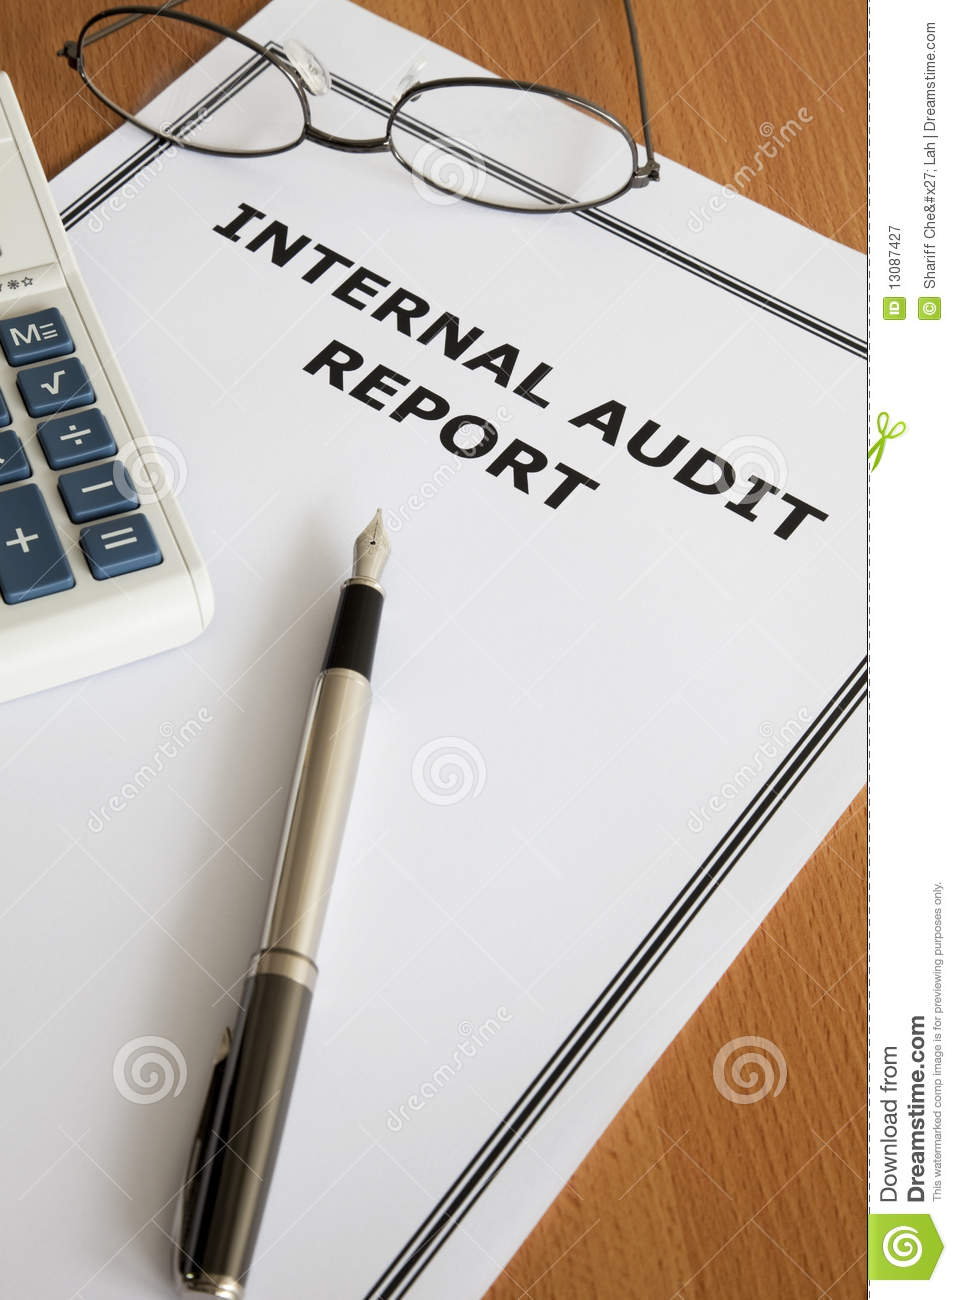 Internal Audit Report stock image  Image of auditing - 13087427